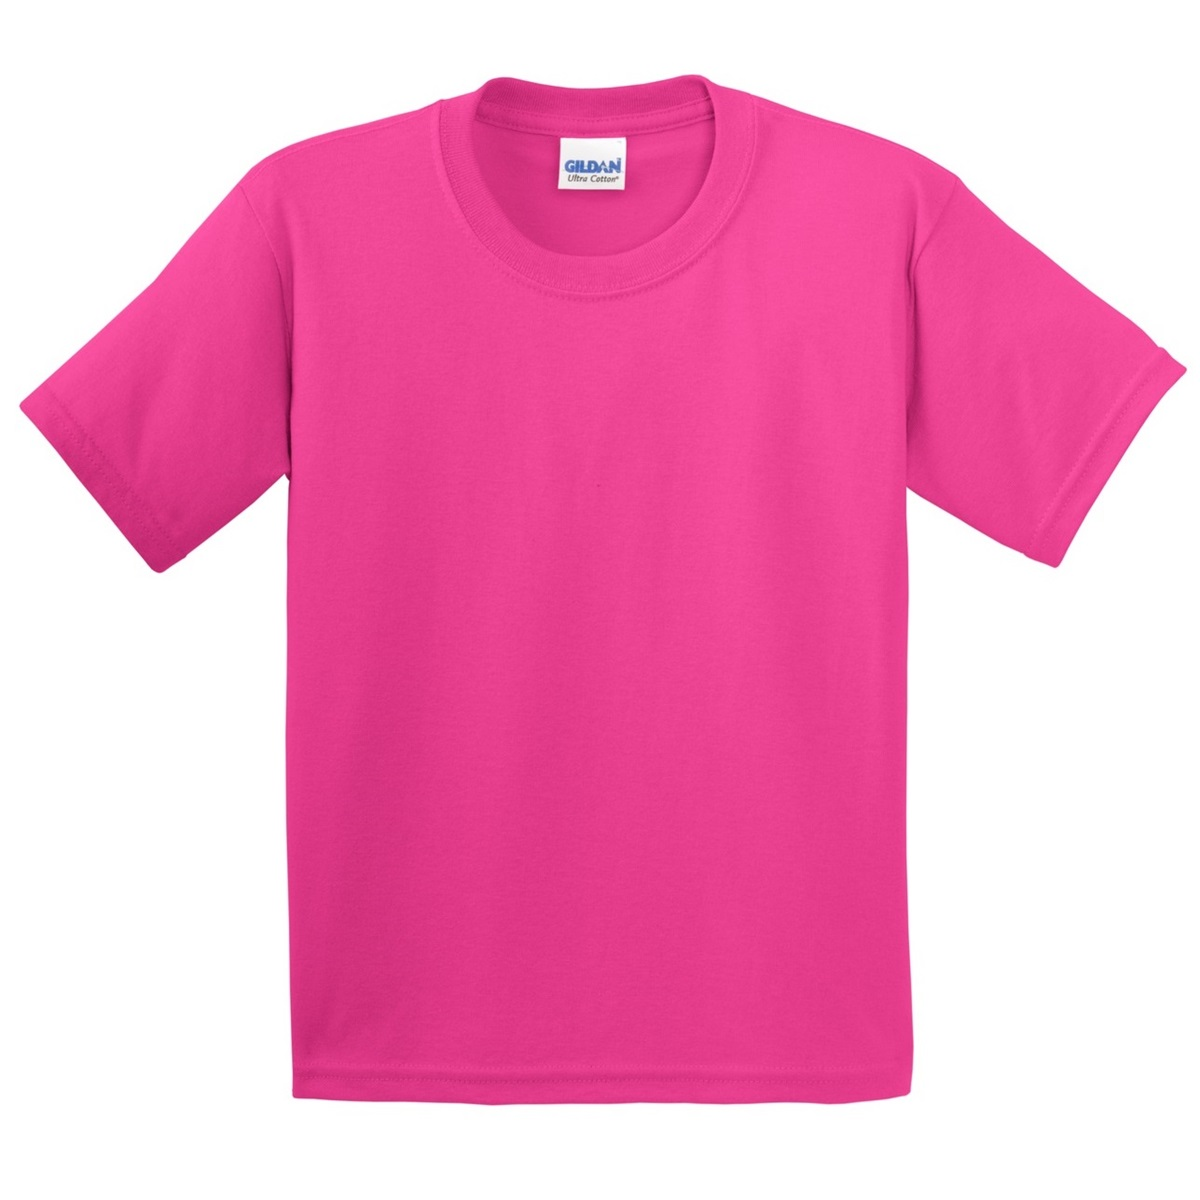 Gildan 2000b youth ultra cotton 100 cotton t shirt for One color t shirt